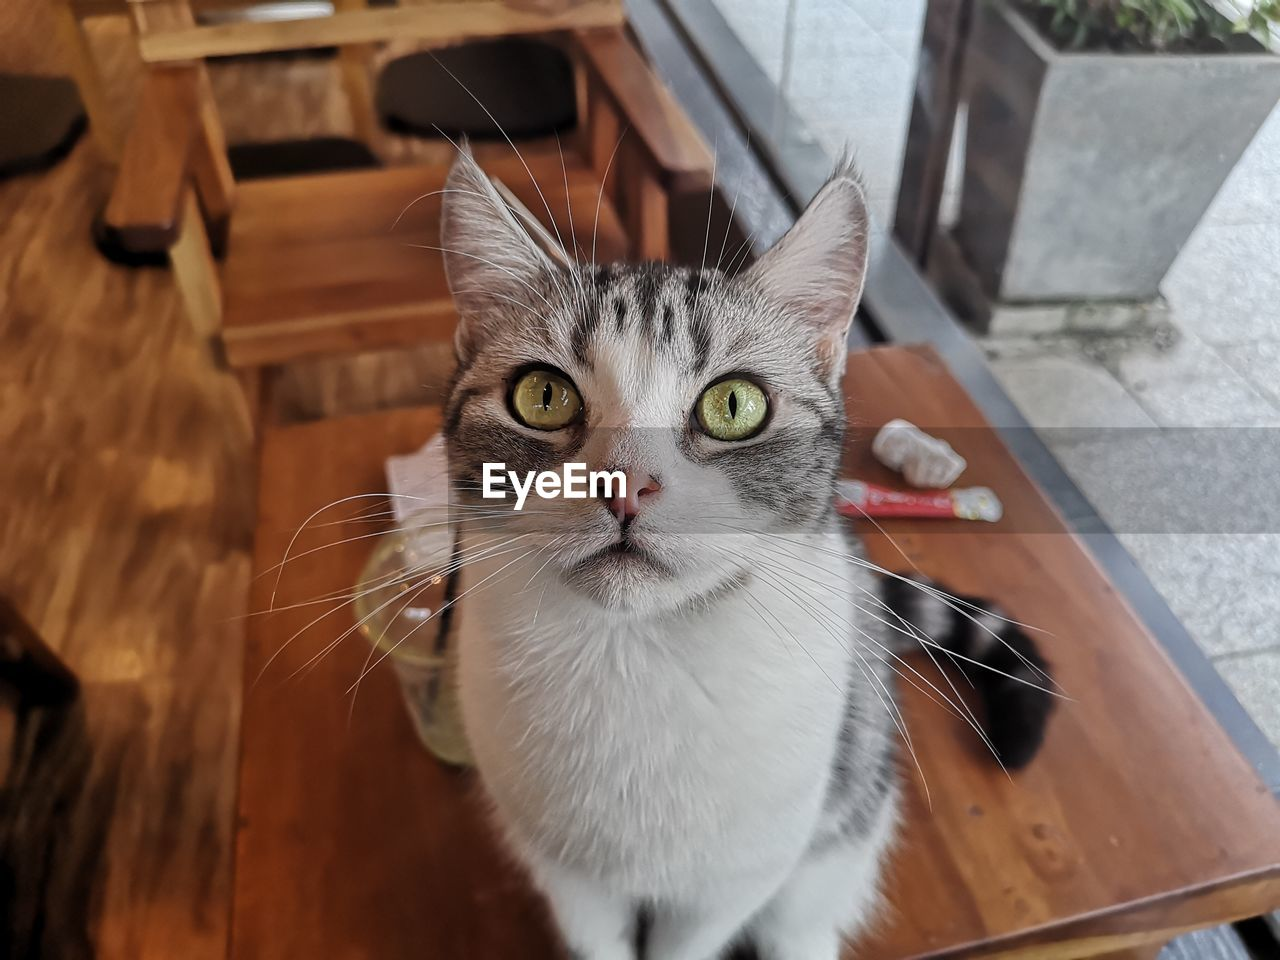 domestic cat, pets, cat, domestic animals, feline, domestic, mammal, one animal, vertebrate, looking at camera, portrait, whisker, high angle view, no people, focus on foreground, close-up, day, animal eye, yellow eyes, tabby